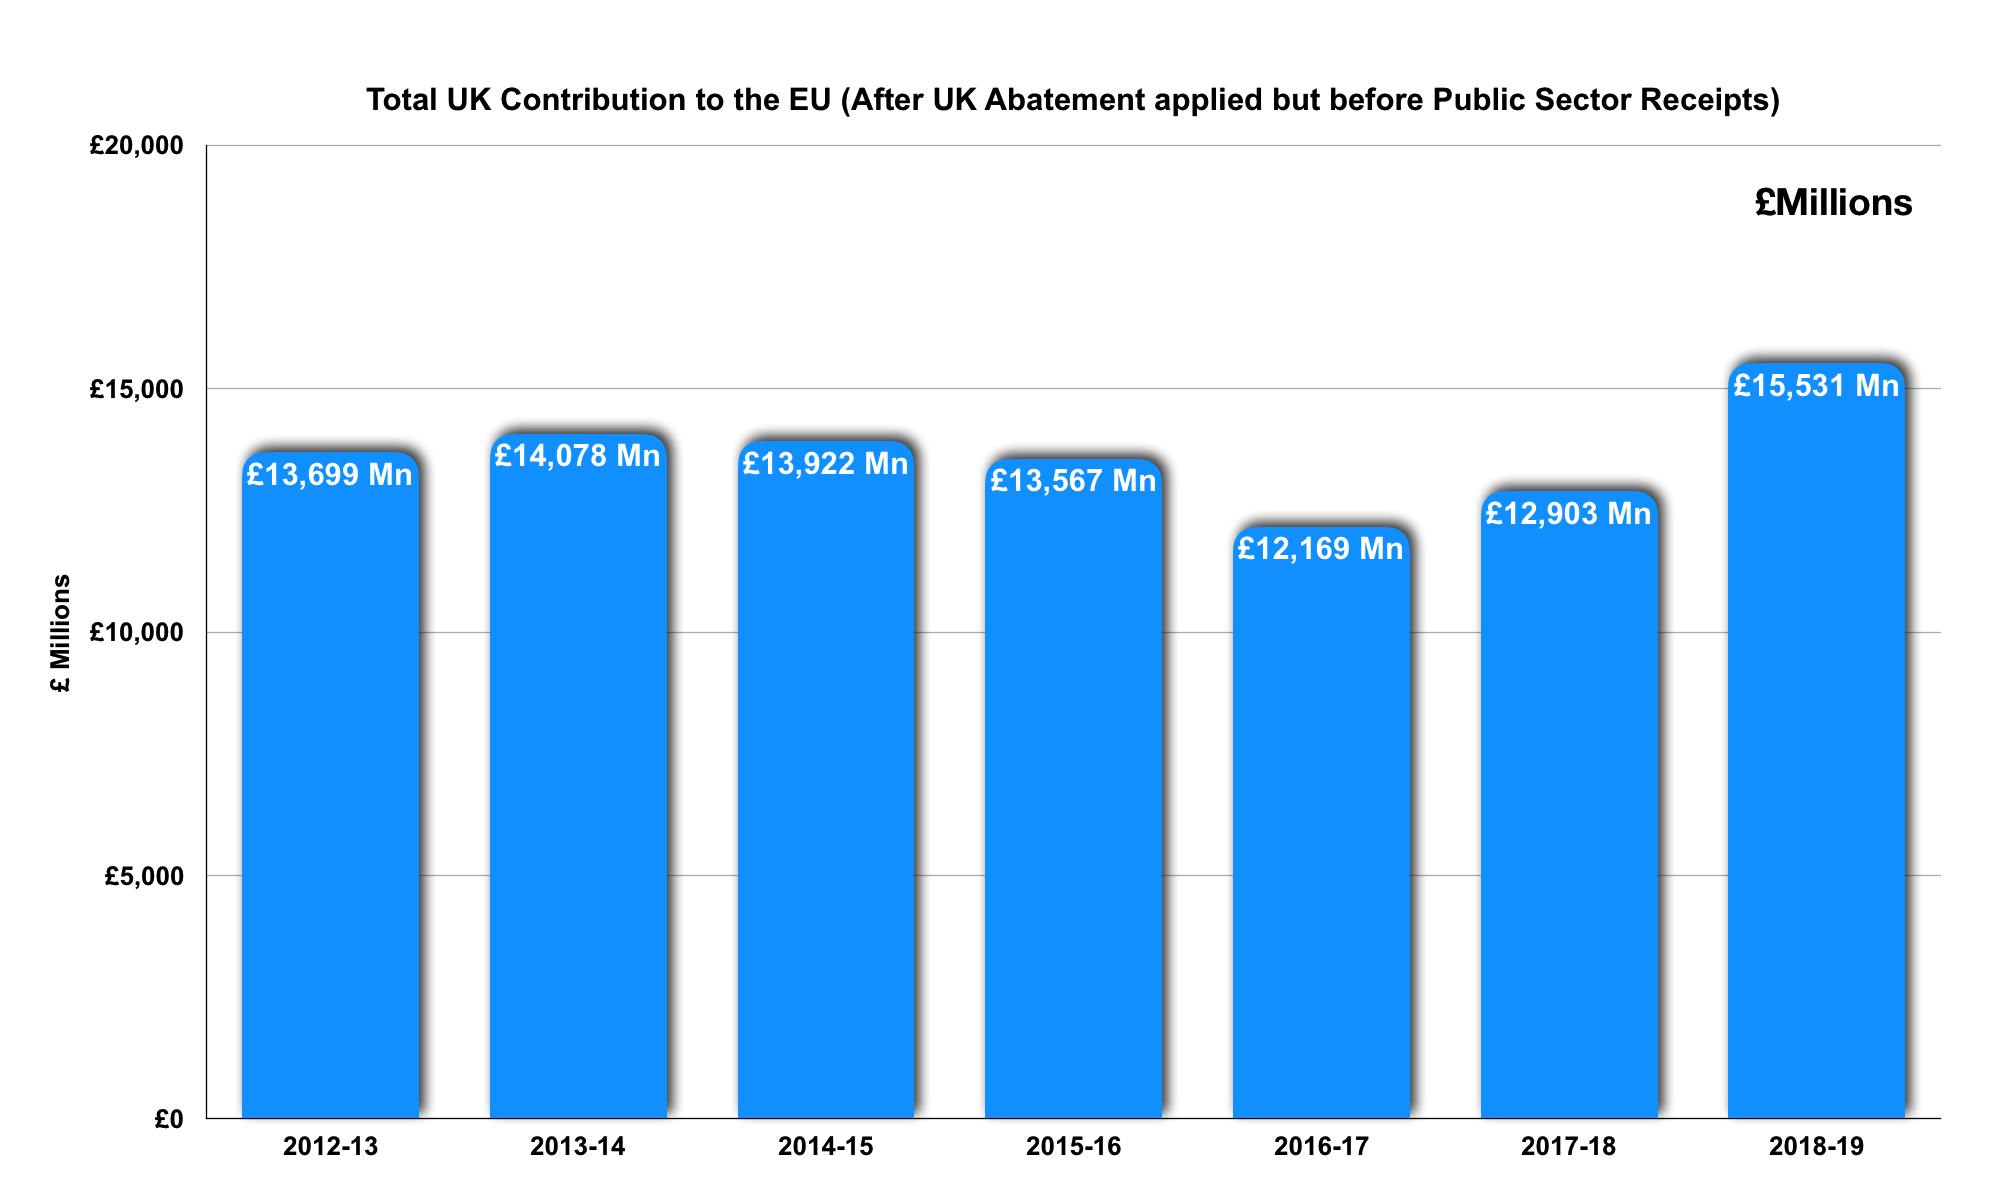 Total UK Contributions to the EU 2012-2019